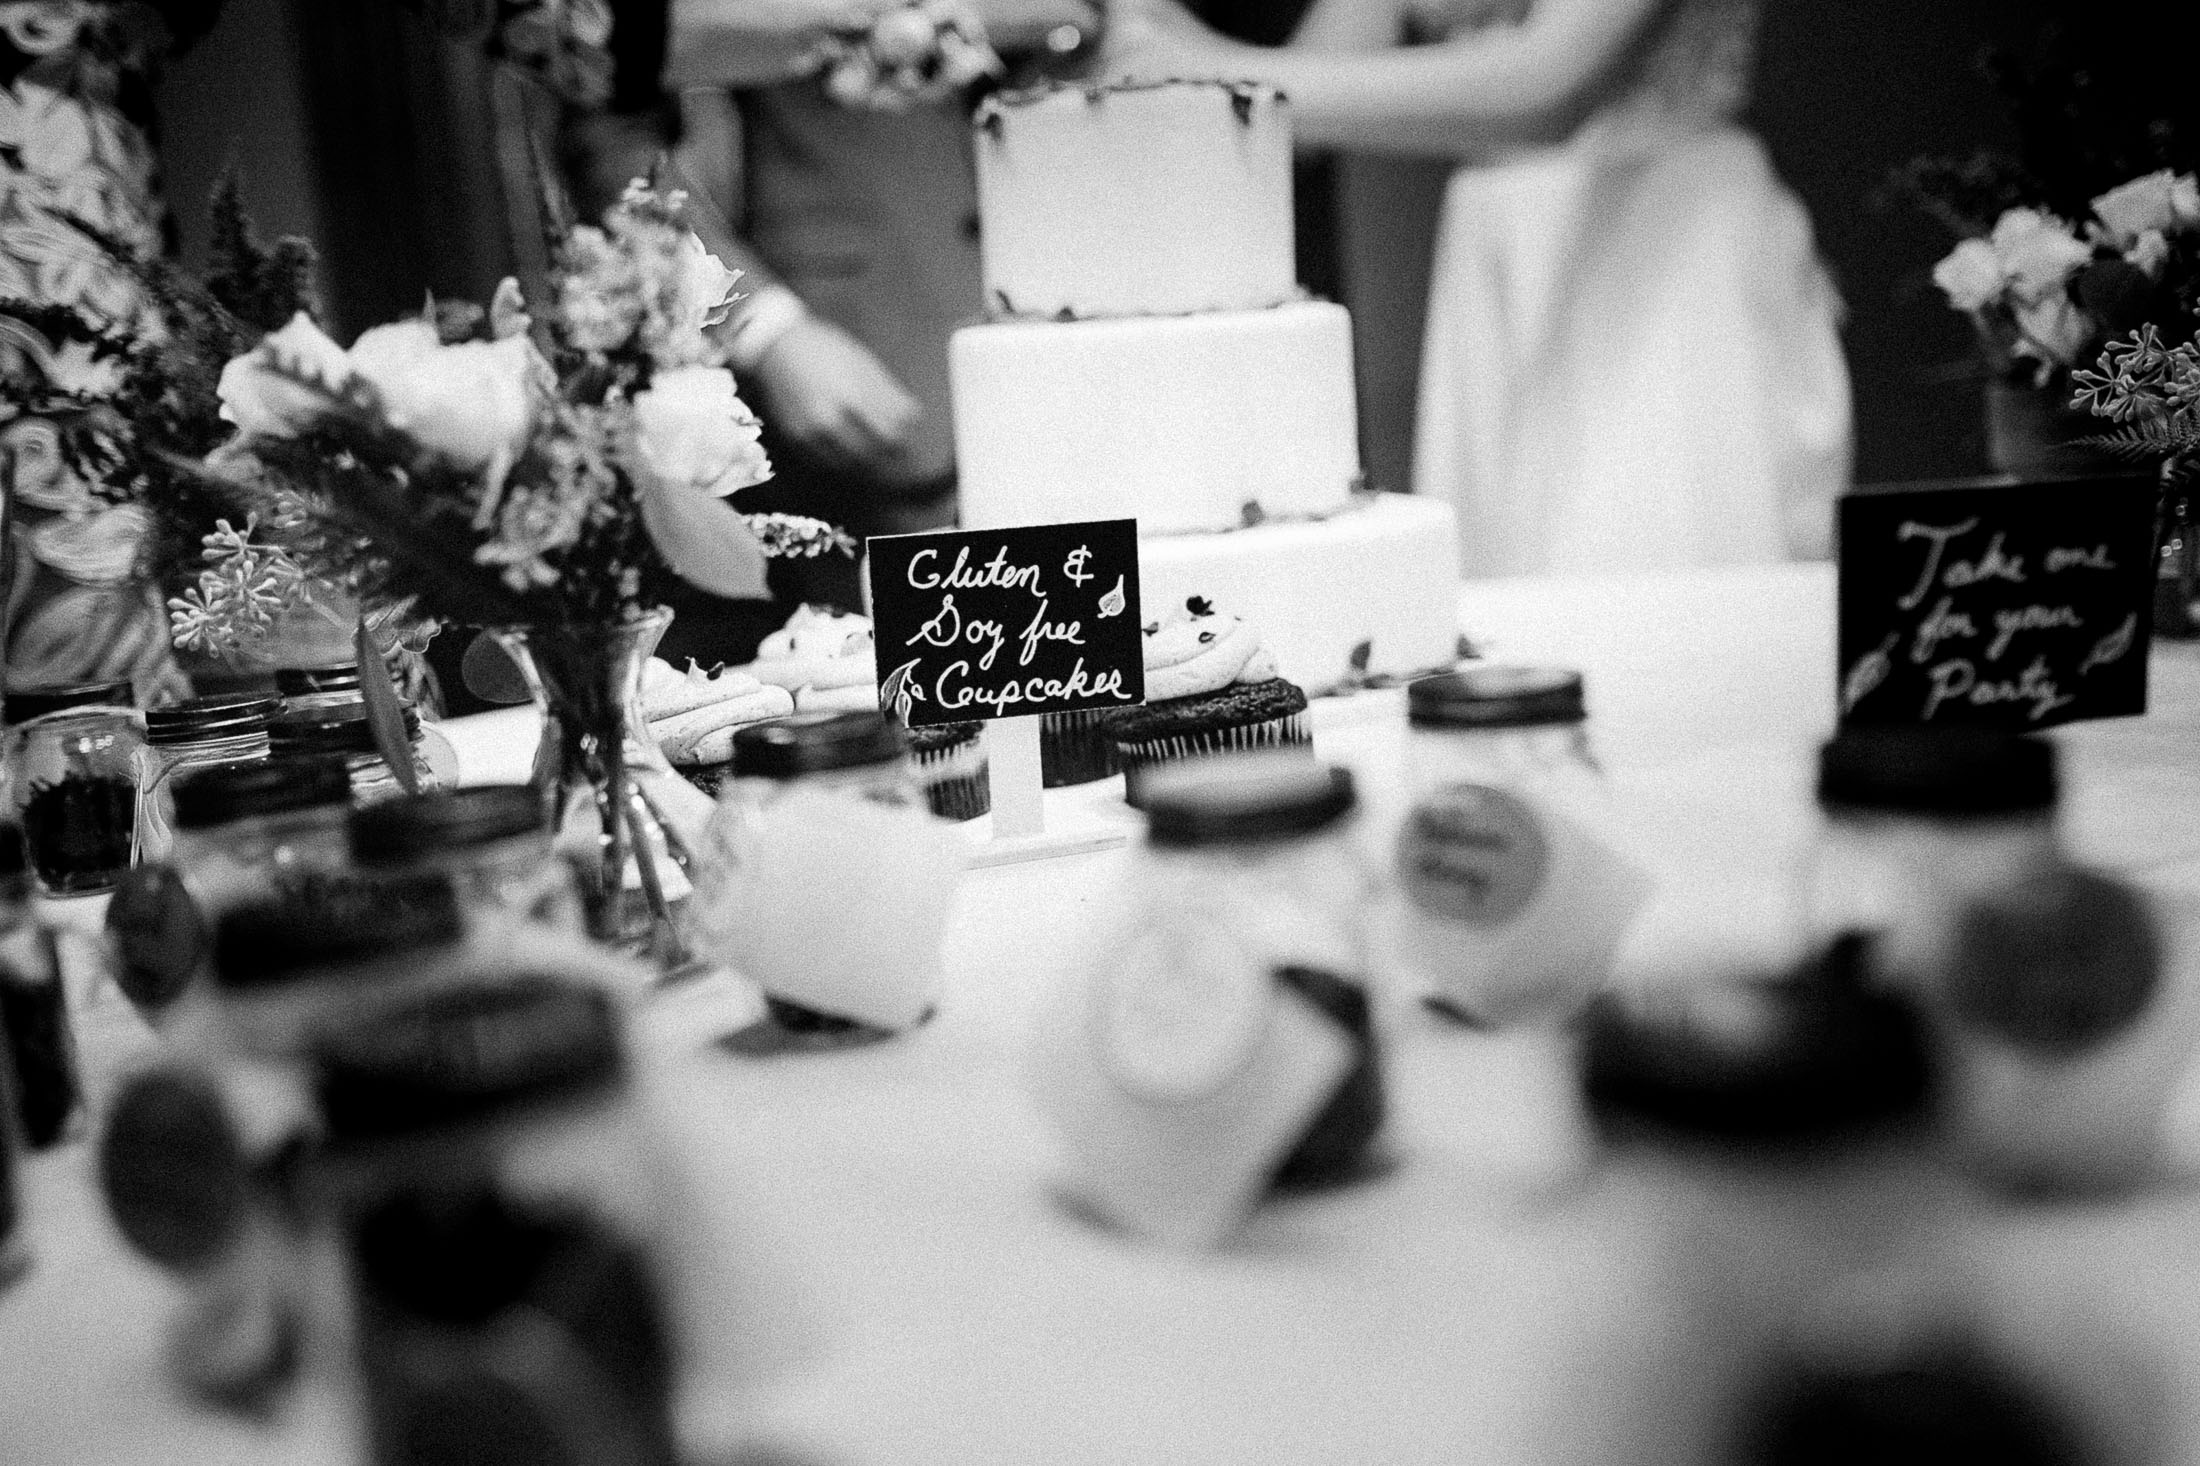 Black and white photo of wedding cake with chalk sign.